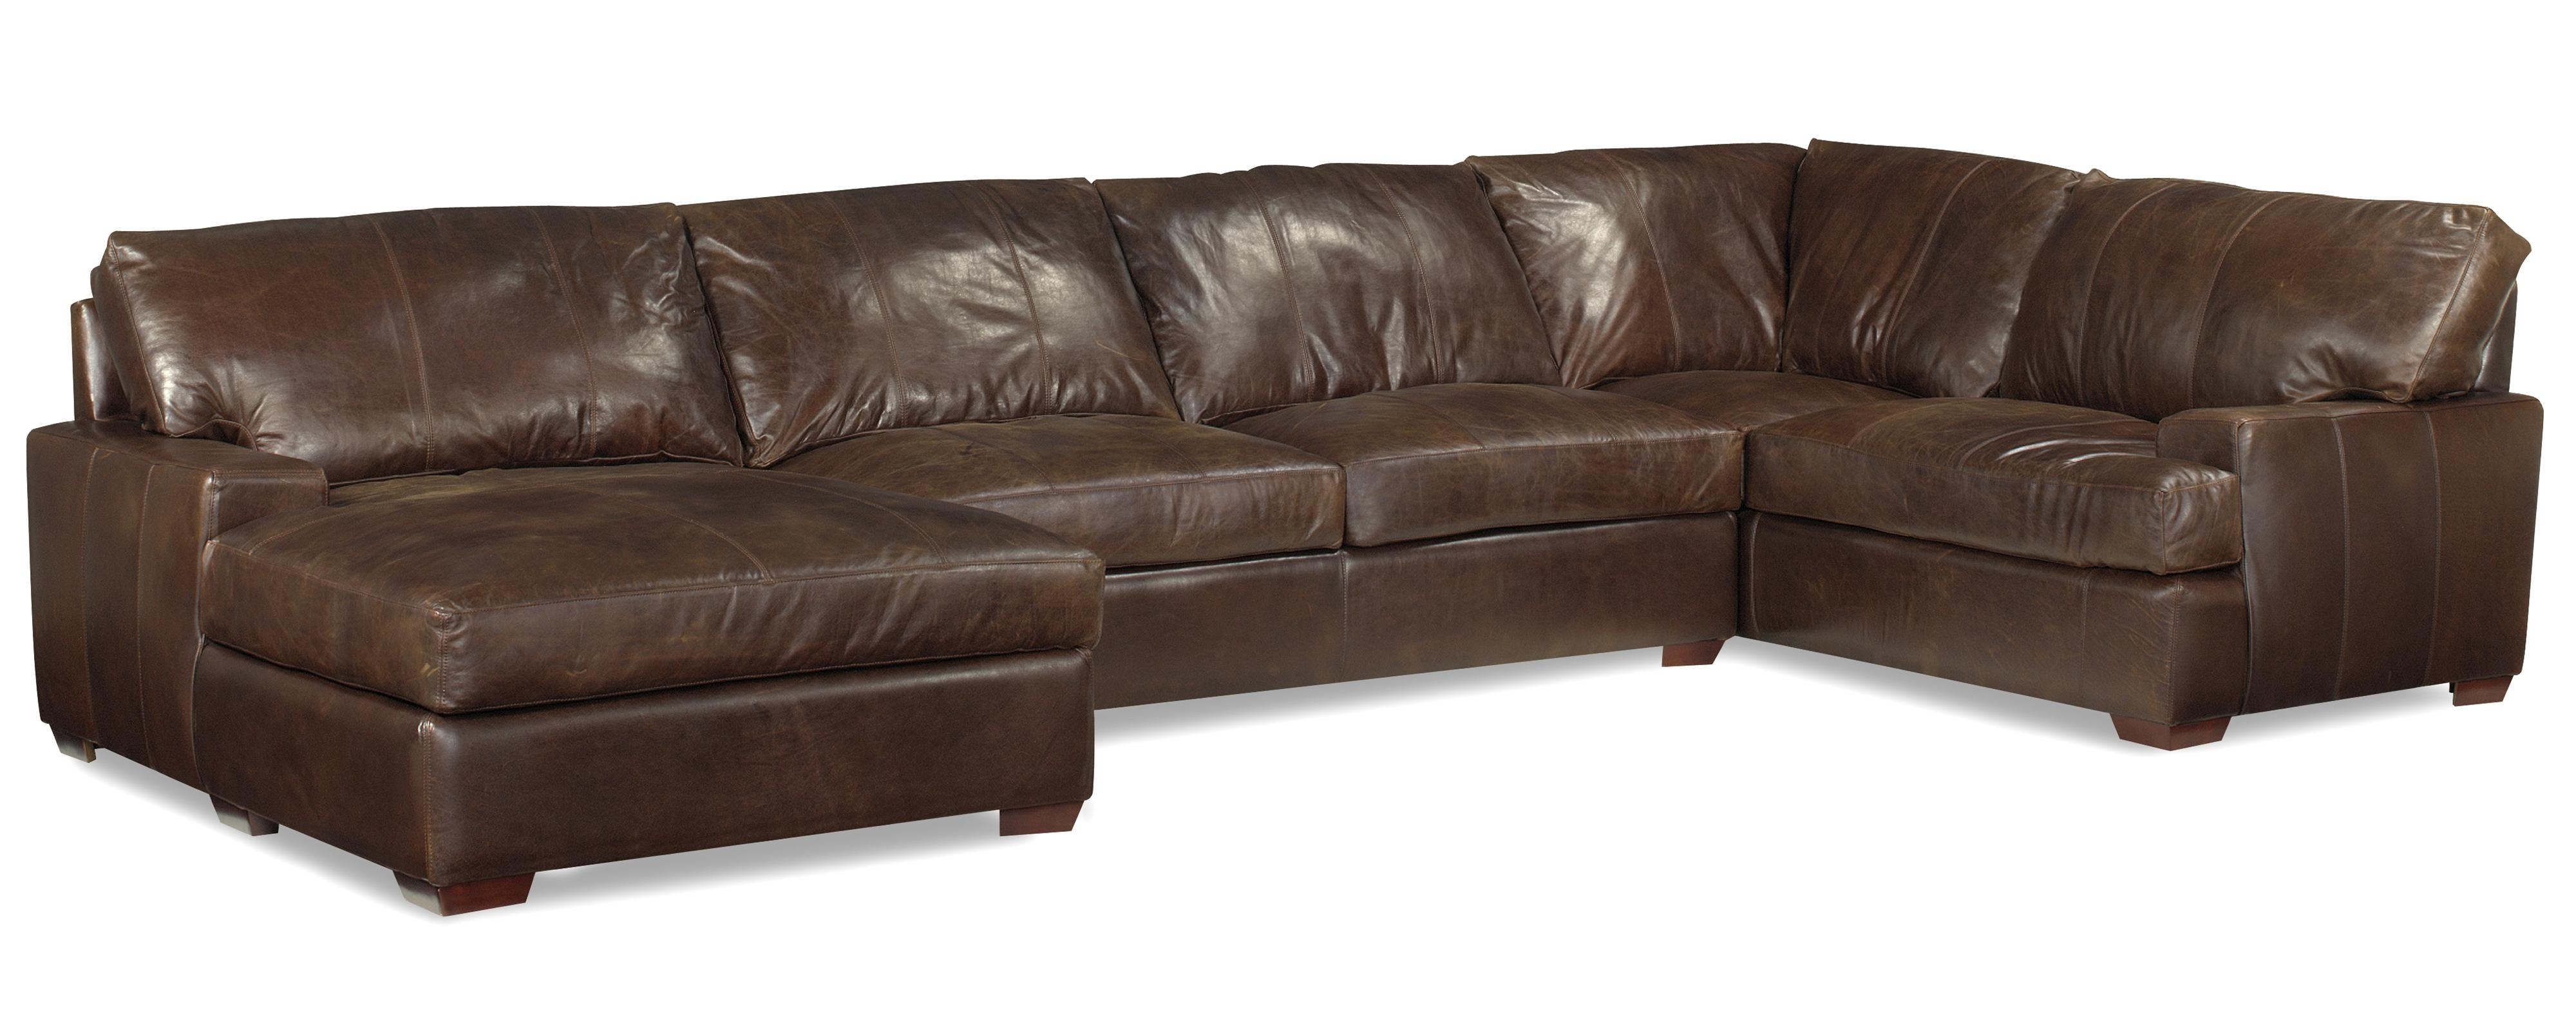 Recent Leather Sofa Chaises Within Usa Premium Leather 3635 Track Arm Sofa Chaise Sectional W/ Block (View 9 of 15)